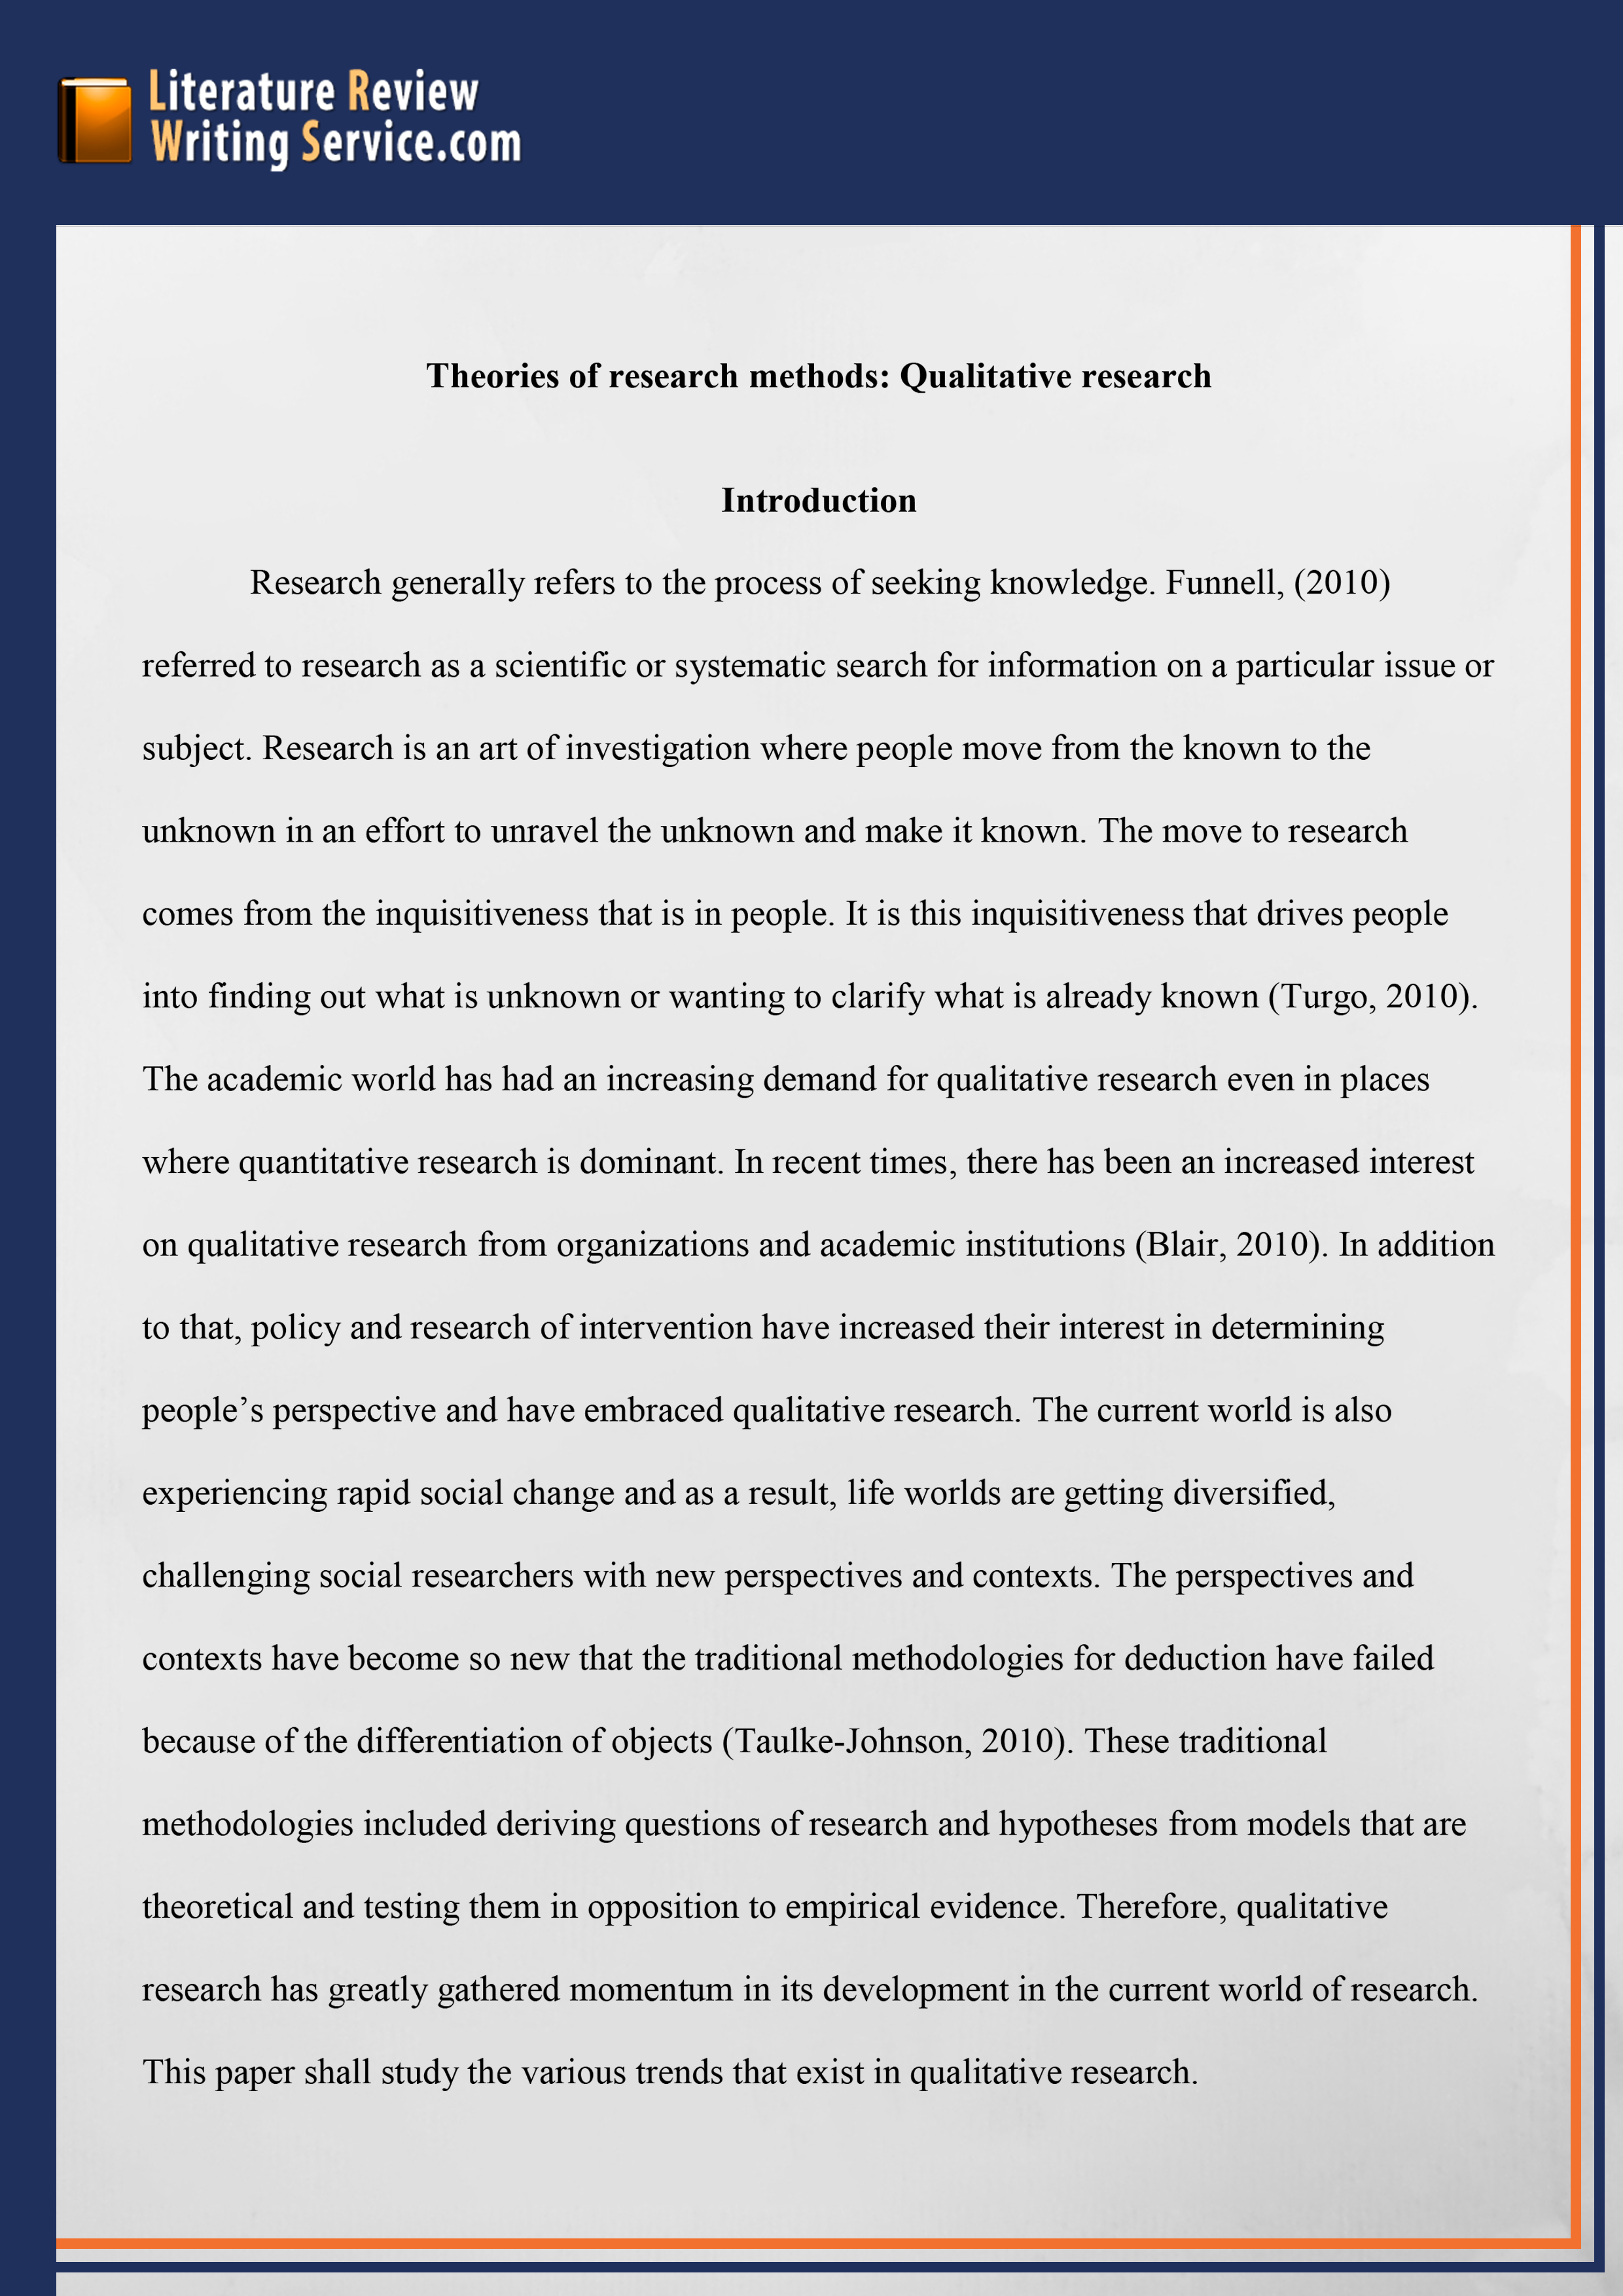 008 Research Paper Example Of An Outline For Literary Professional Dissertation Literature Review Striking A Full